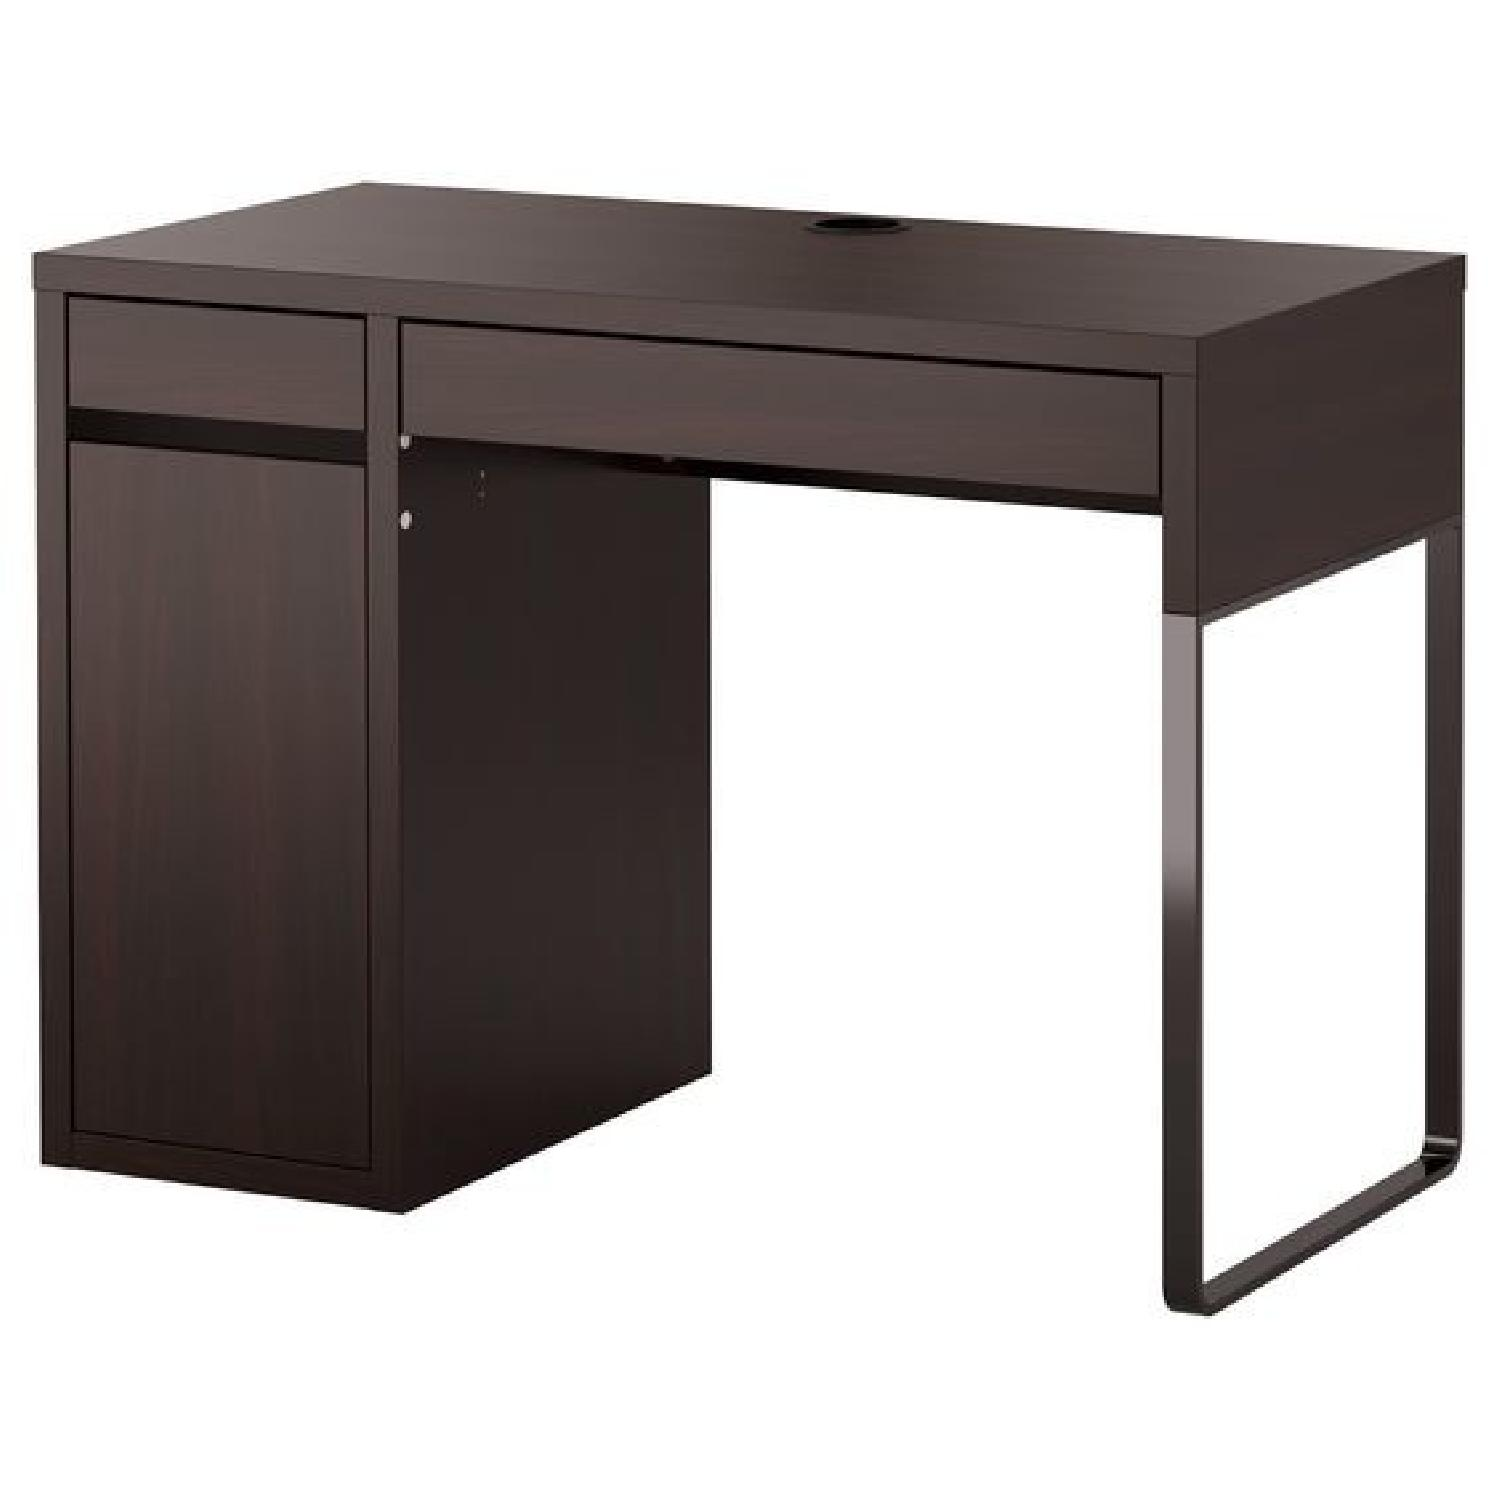 Ikea Micke Desk W/ Storage In Brown/Back ...